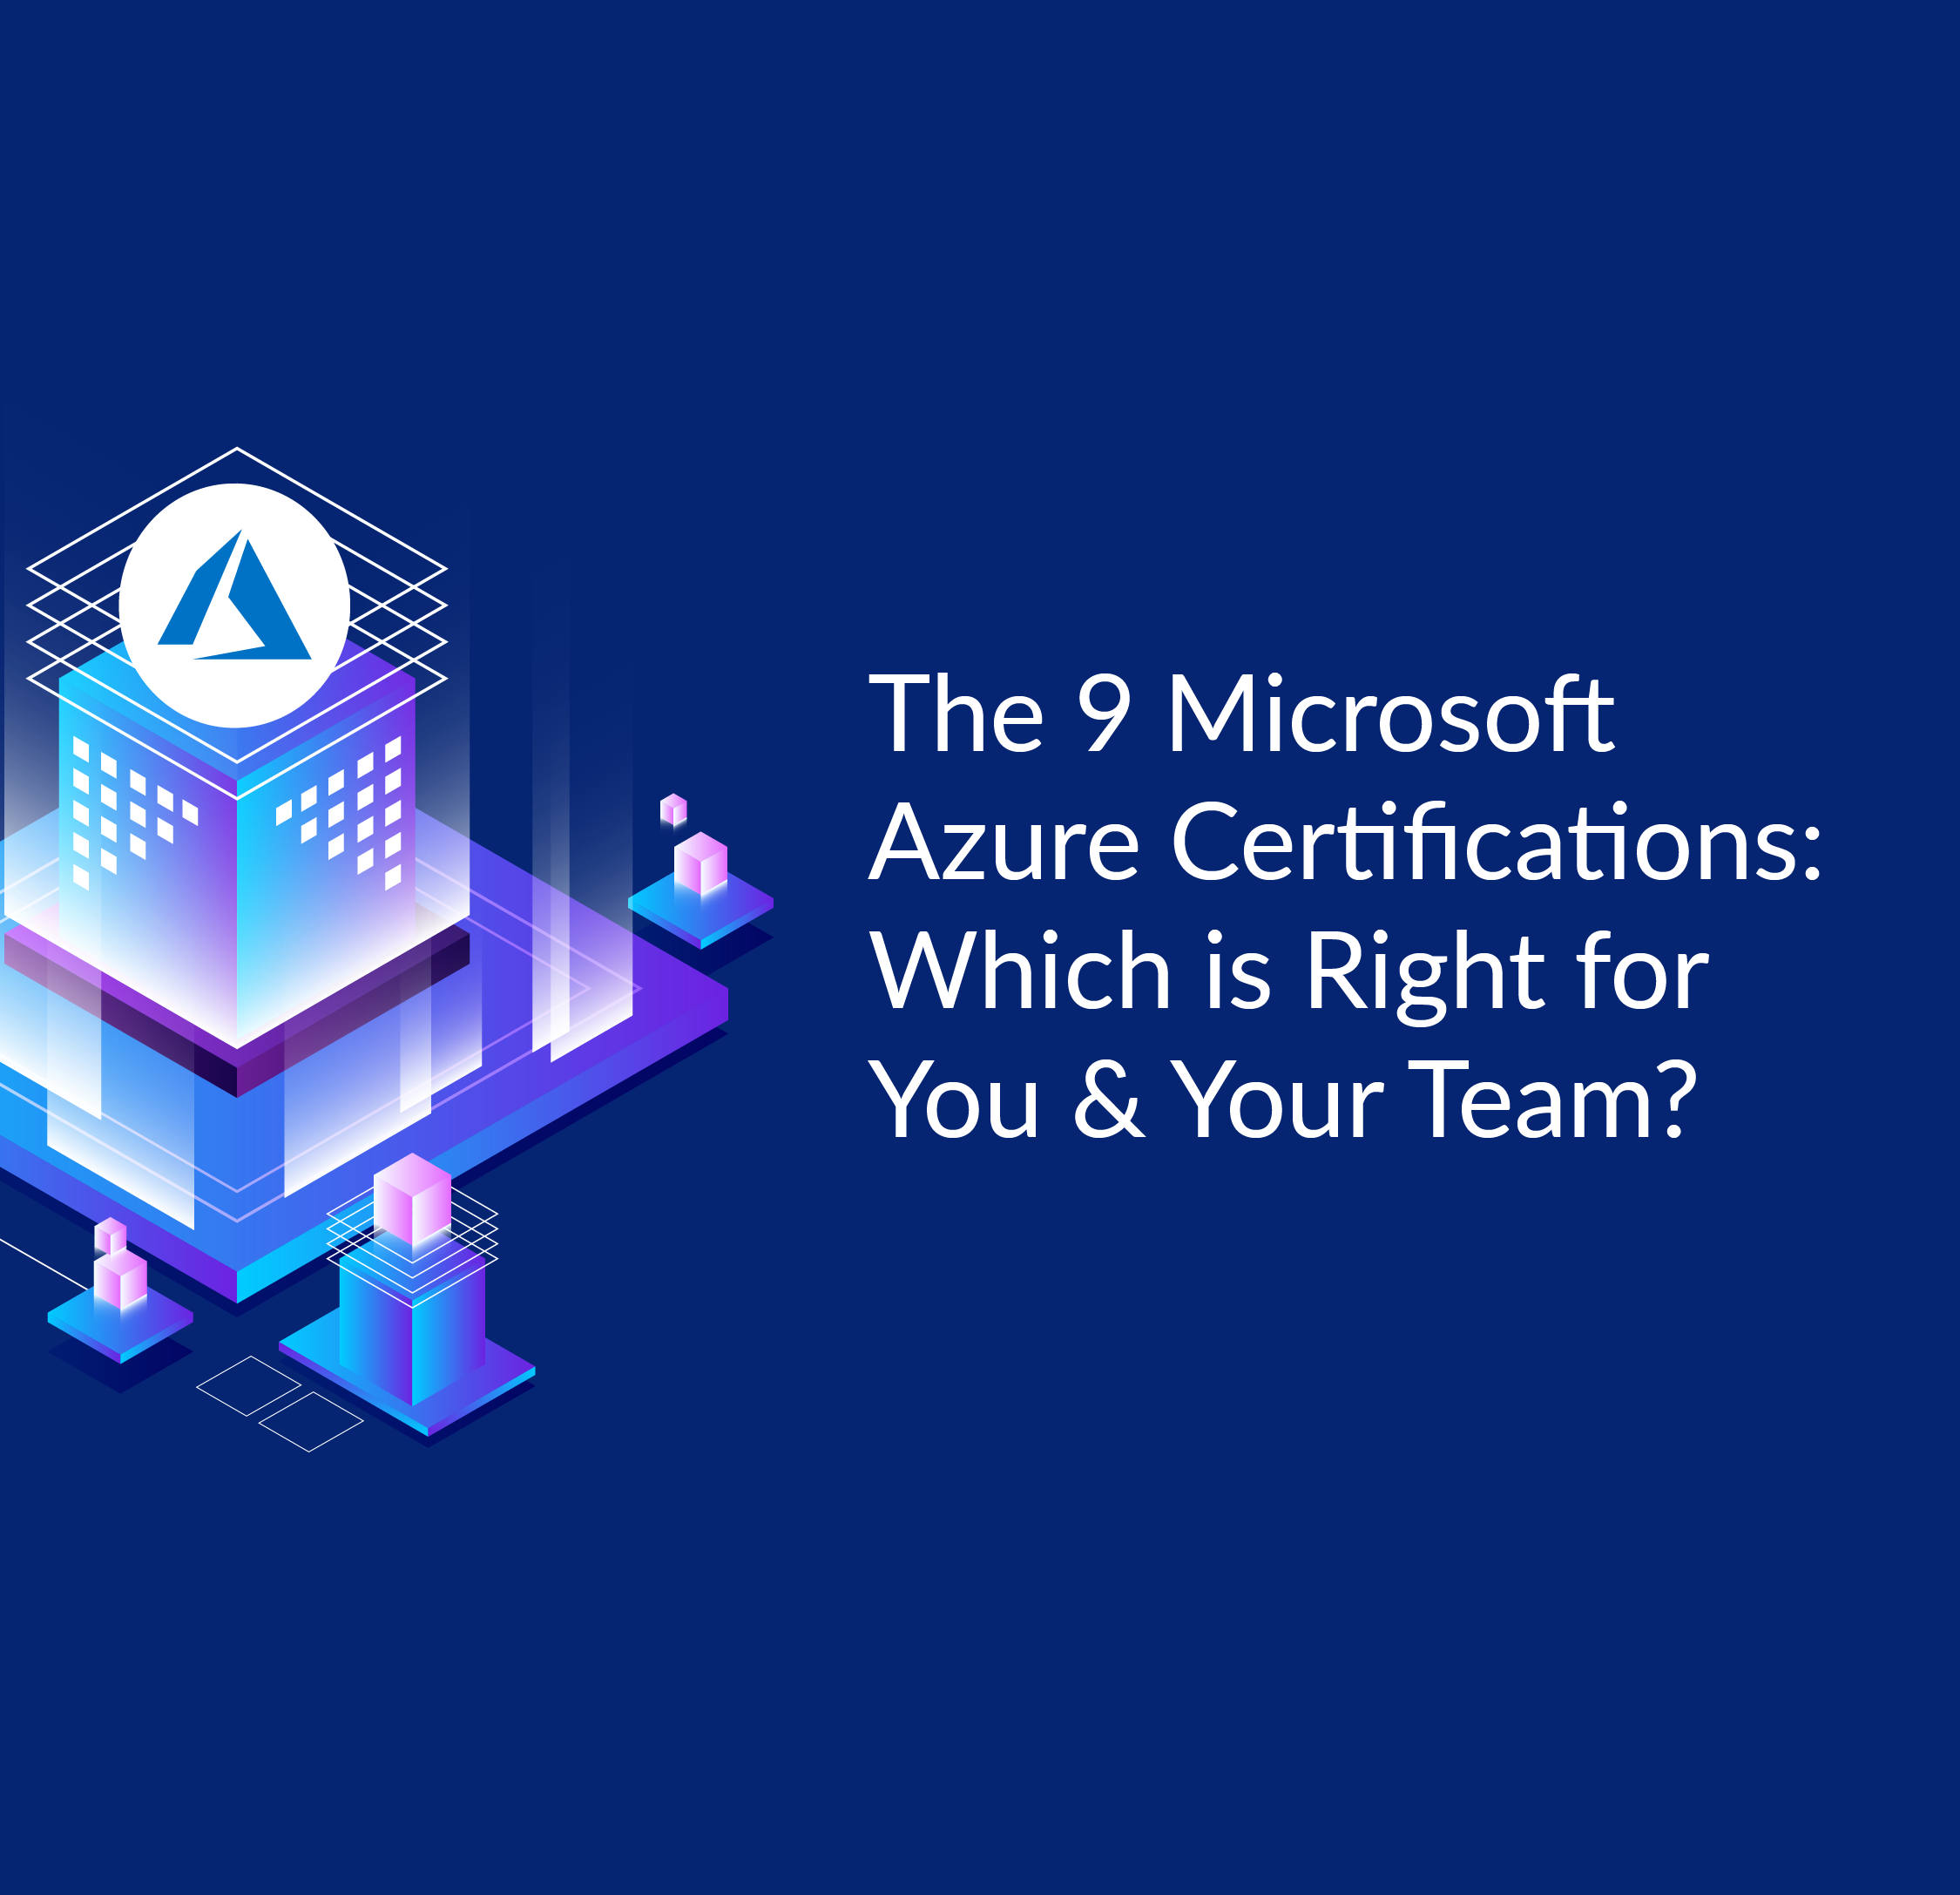 The 9 Microsoft Azure Certifications: Which is Right for You